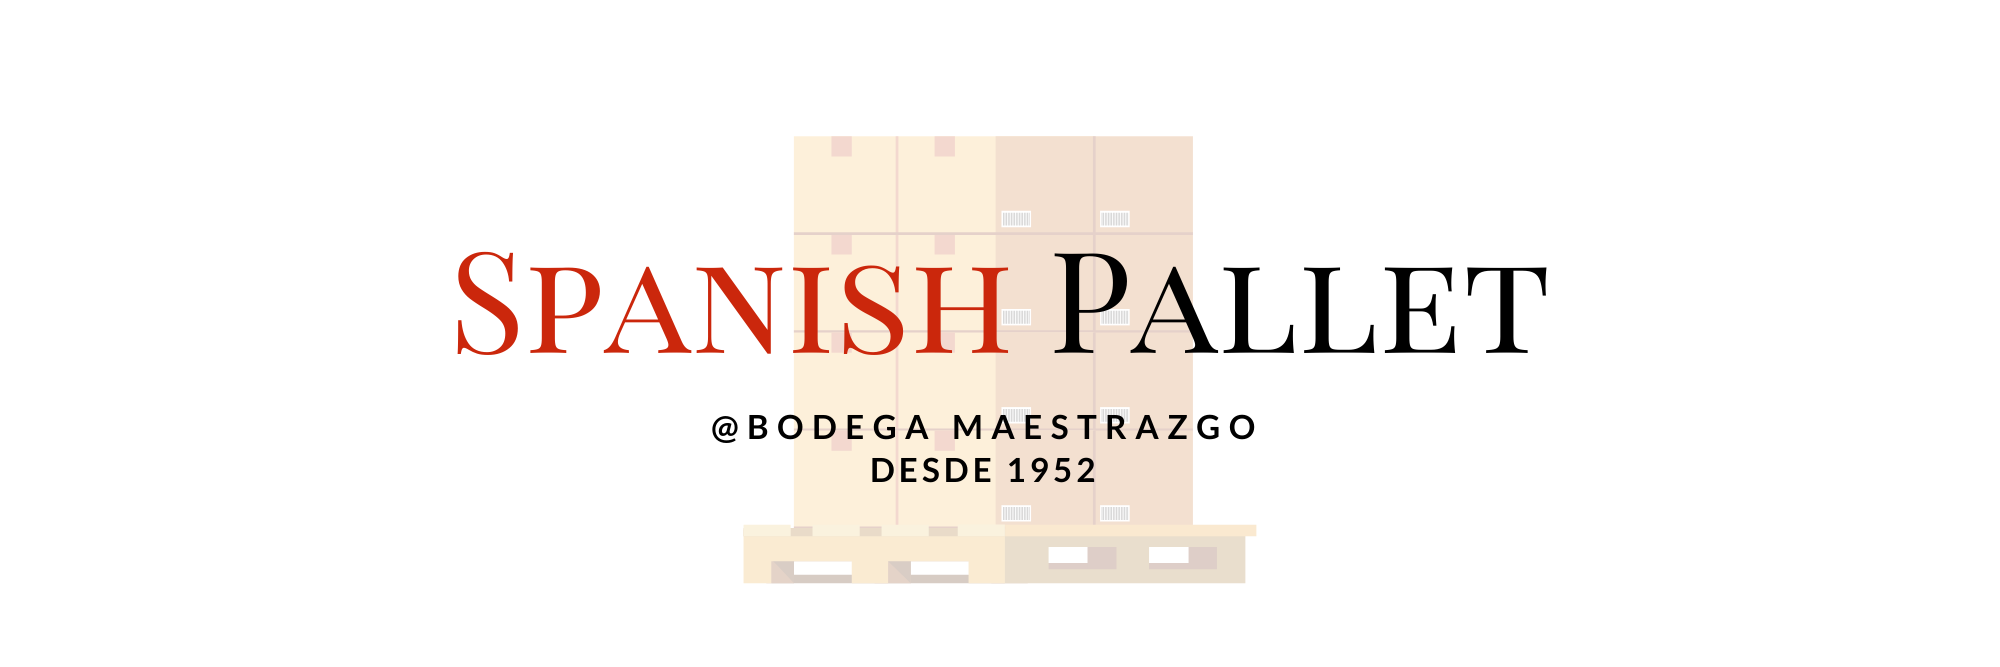 The Spanish Pallet @ Bodega Maestrazgo